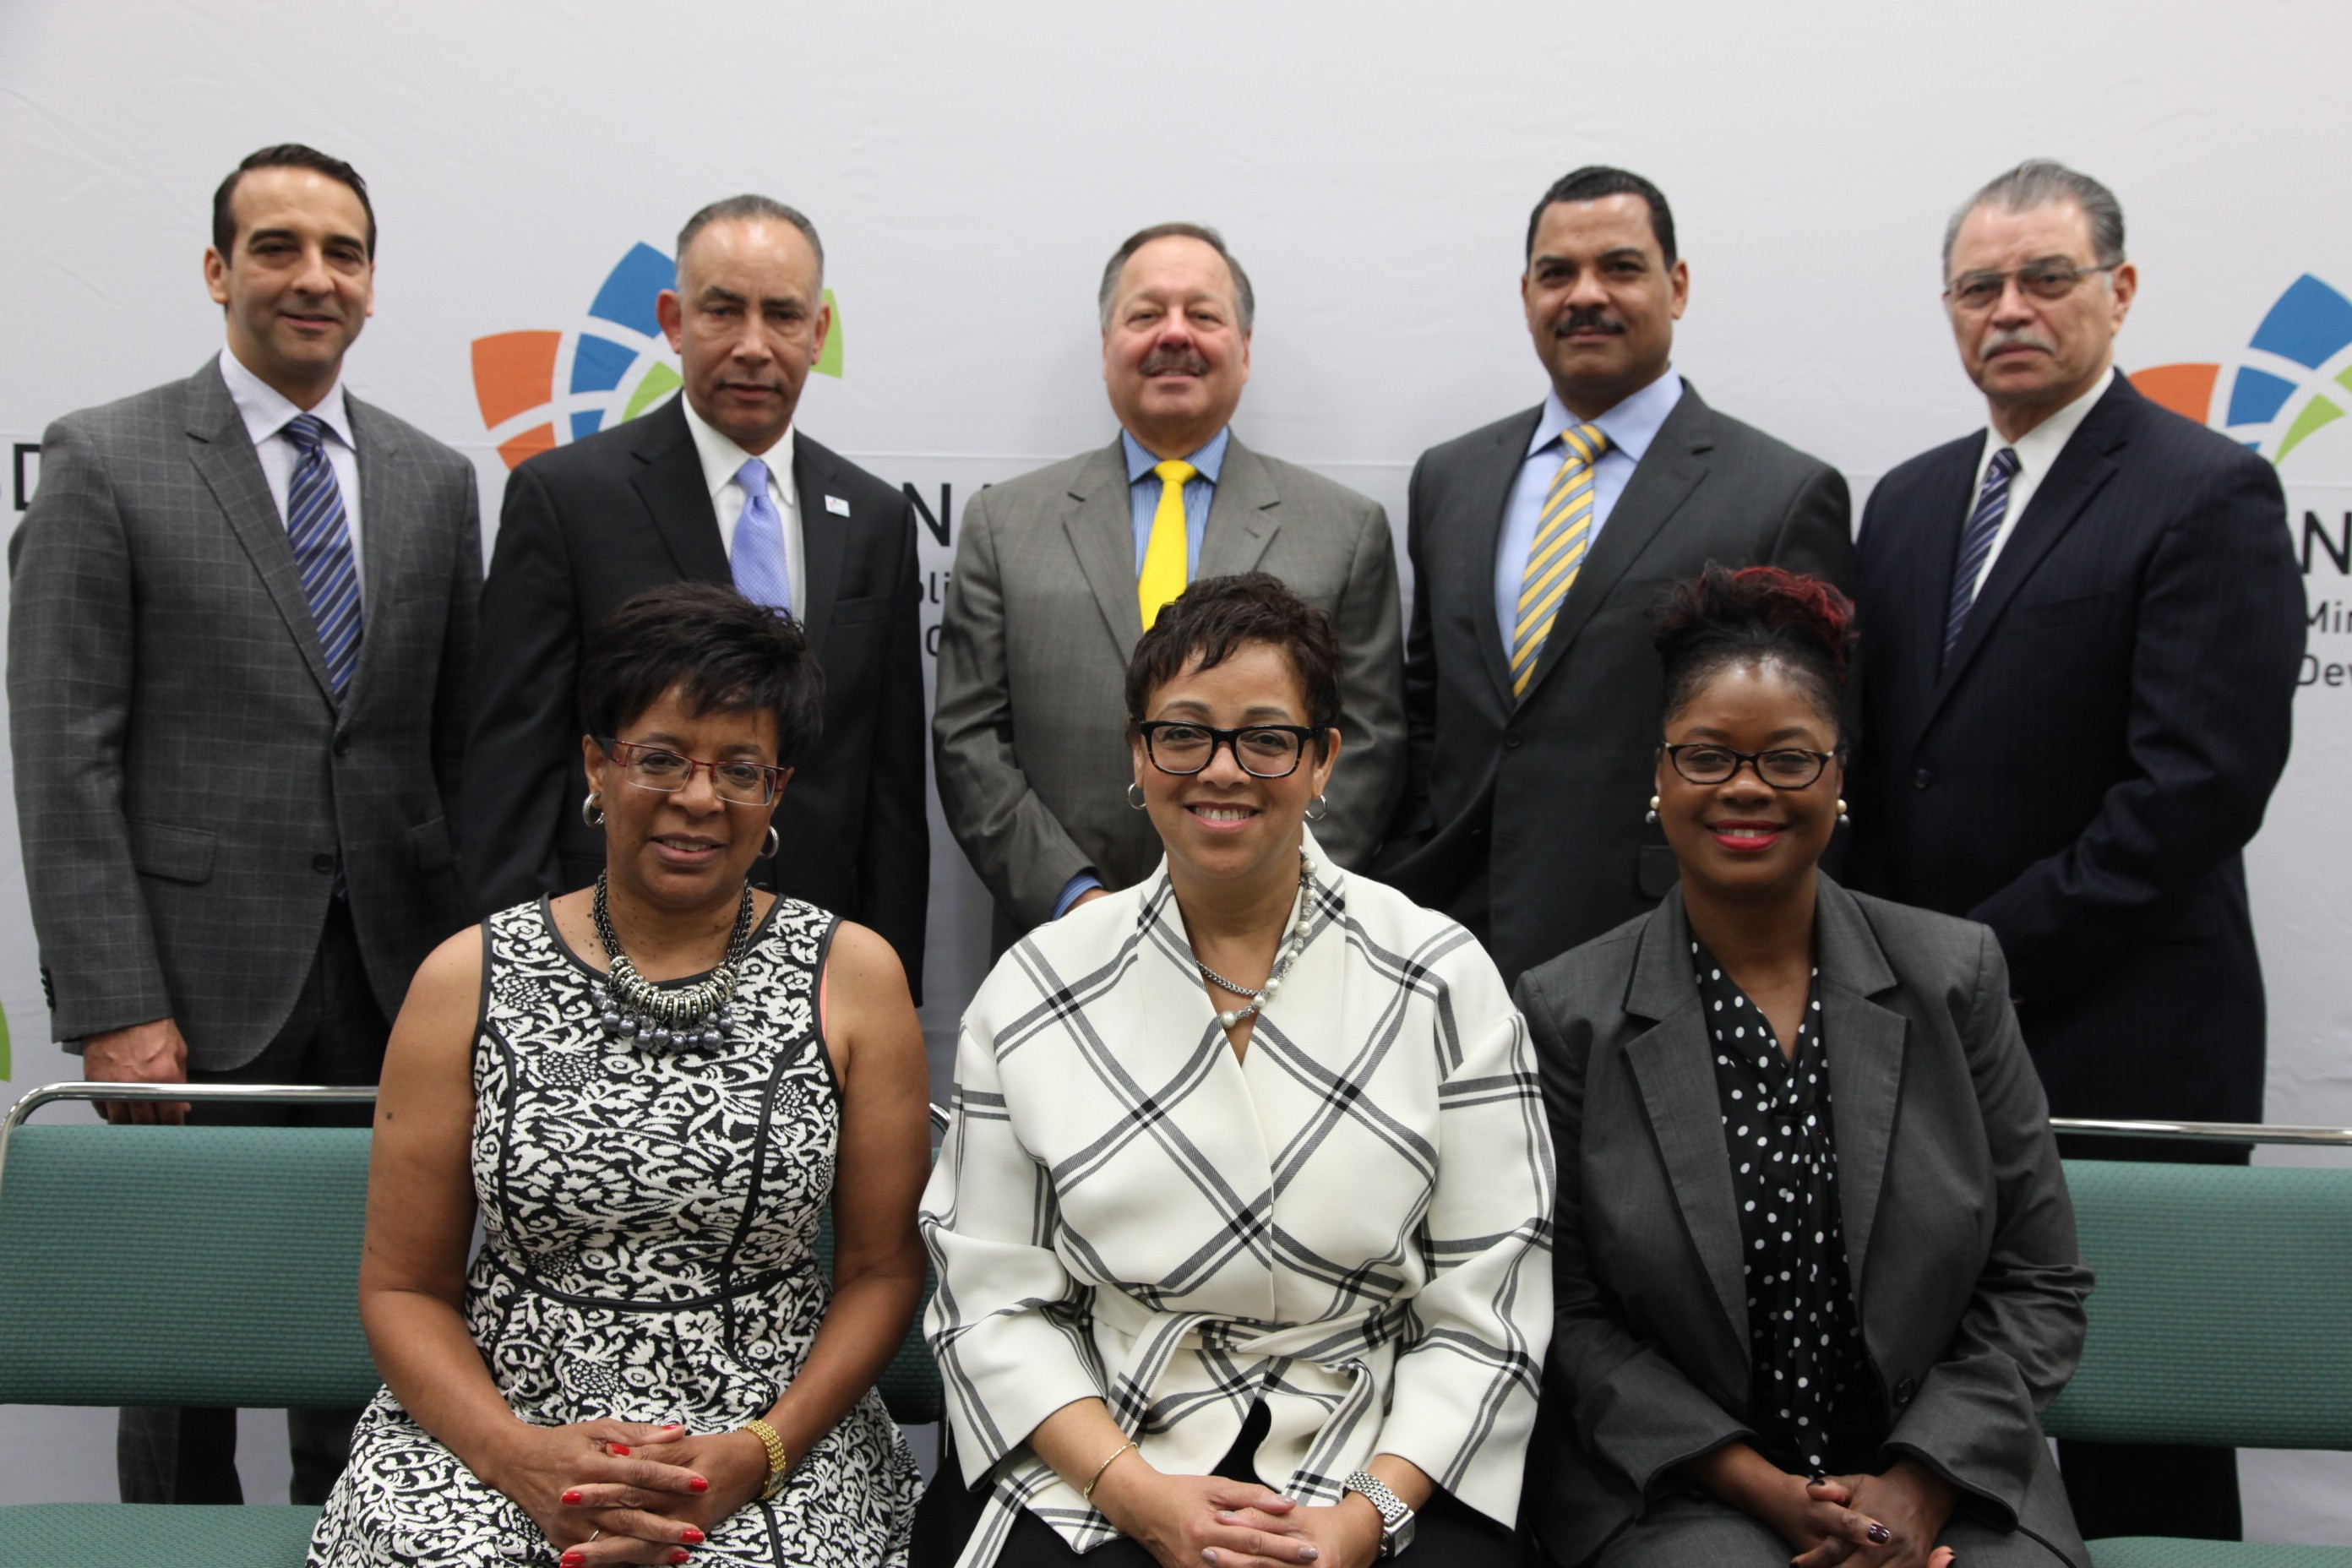 2014 NMSDC Luncheon participants.